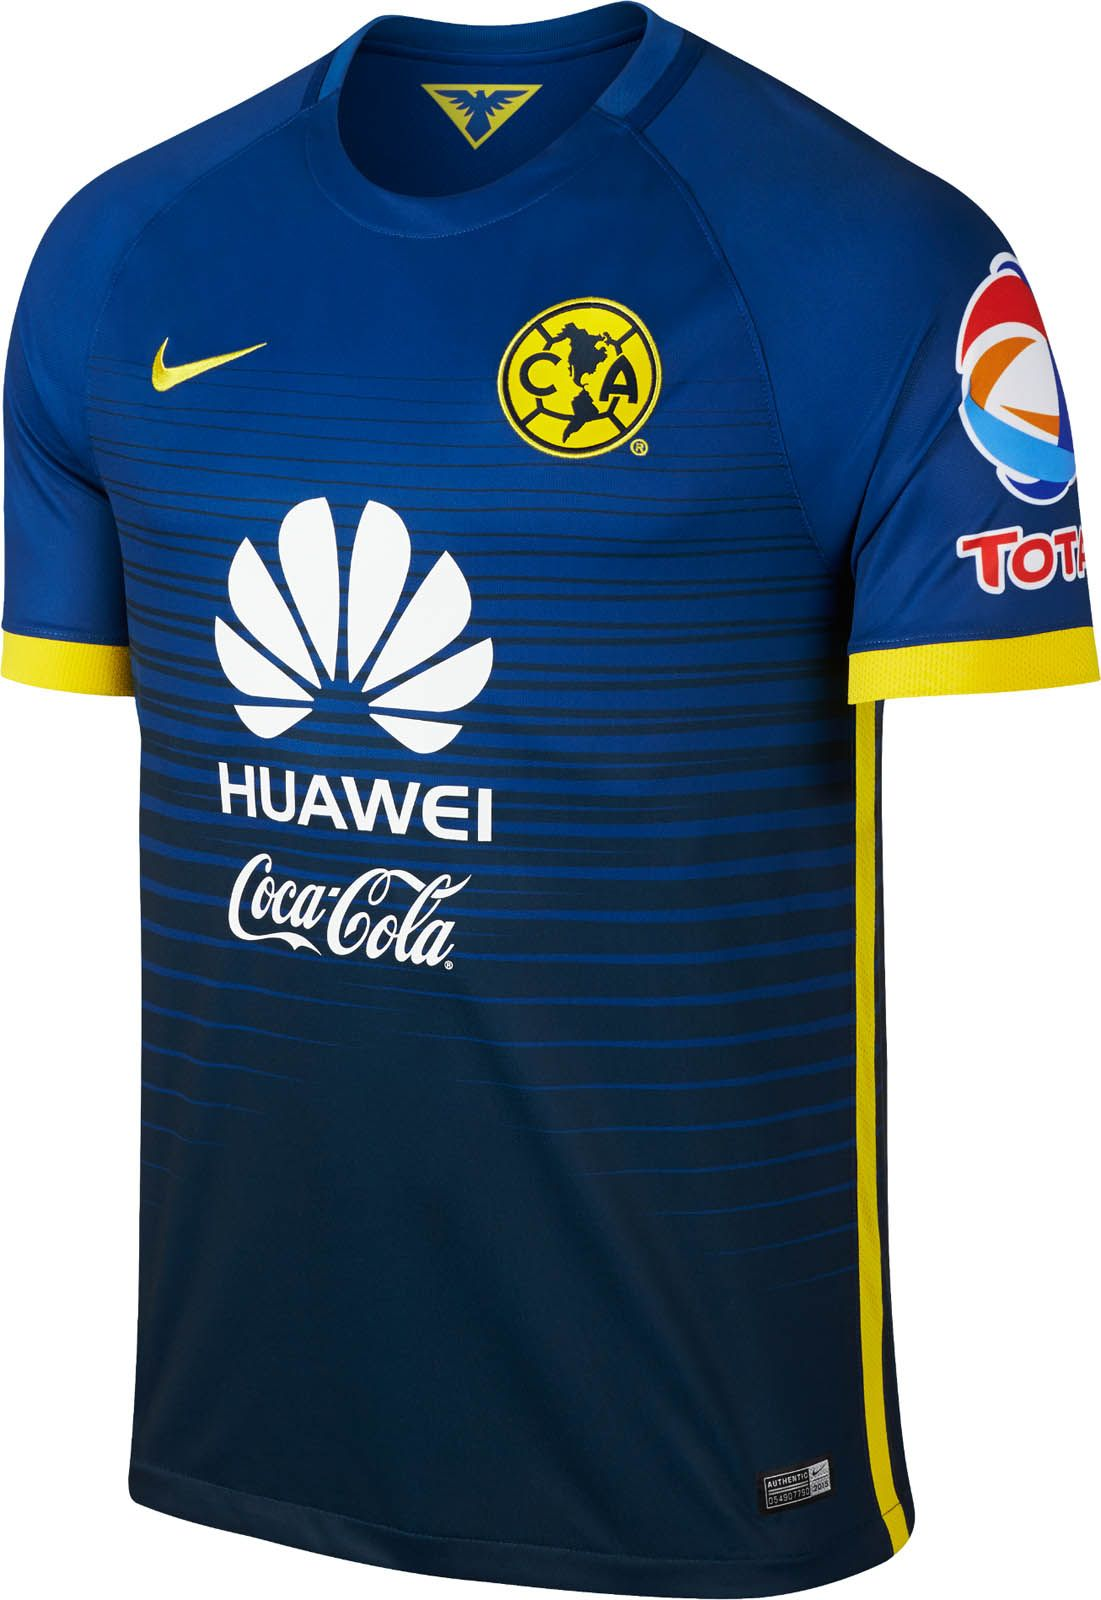 Nike mexico jersey 2017 one pen one page - Club De F Tbol Am Rica Mexico 2015 2016 Nike Away Shirt